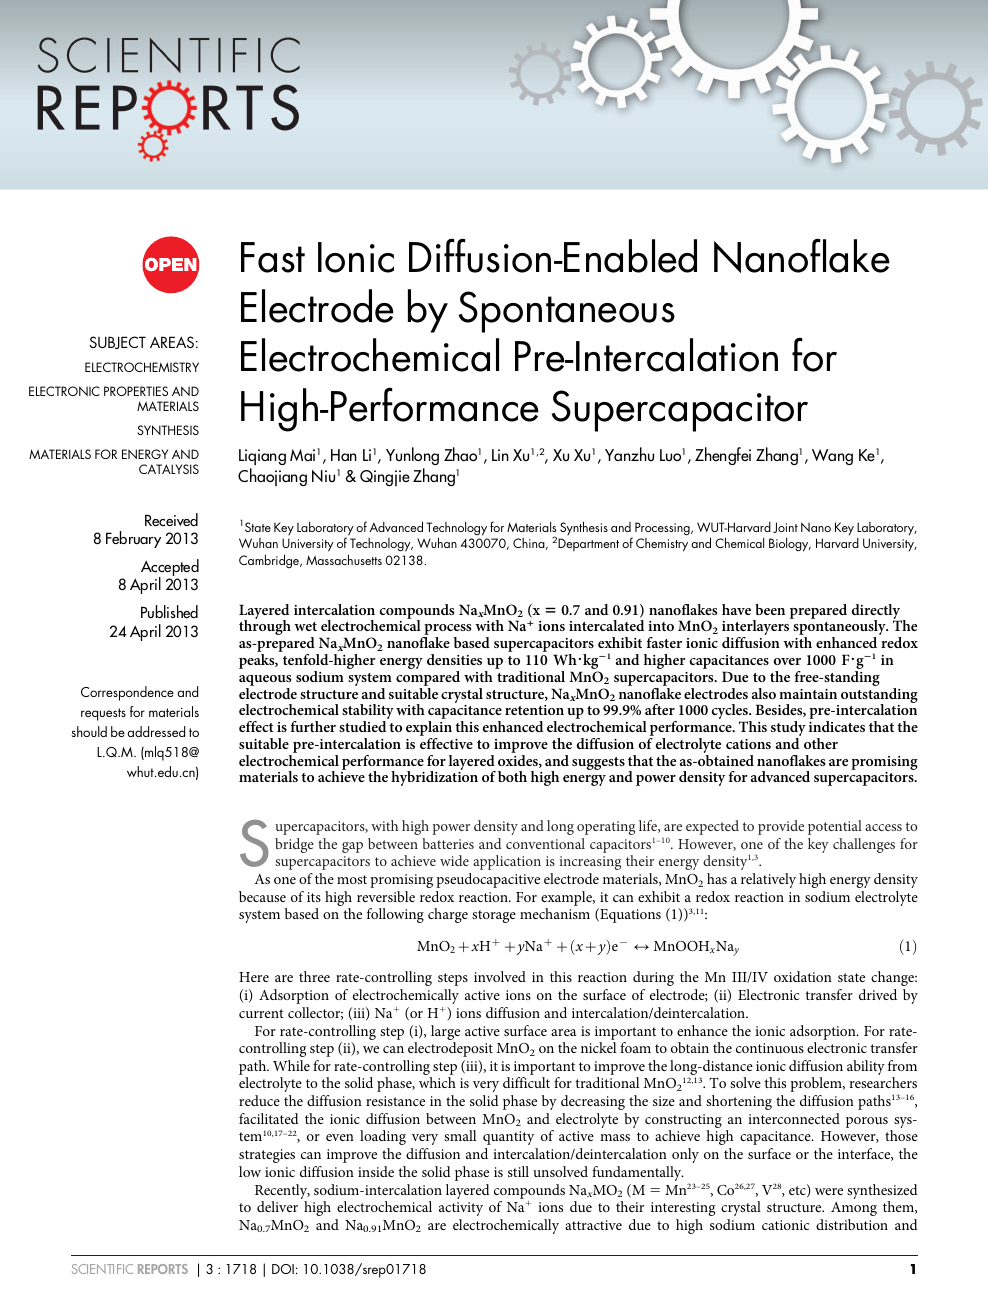 Fast Ionic Diffusion-Enabled Nanoflake Electrode by